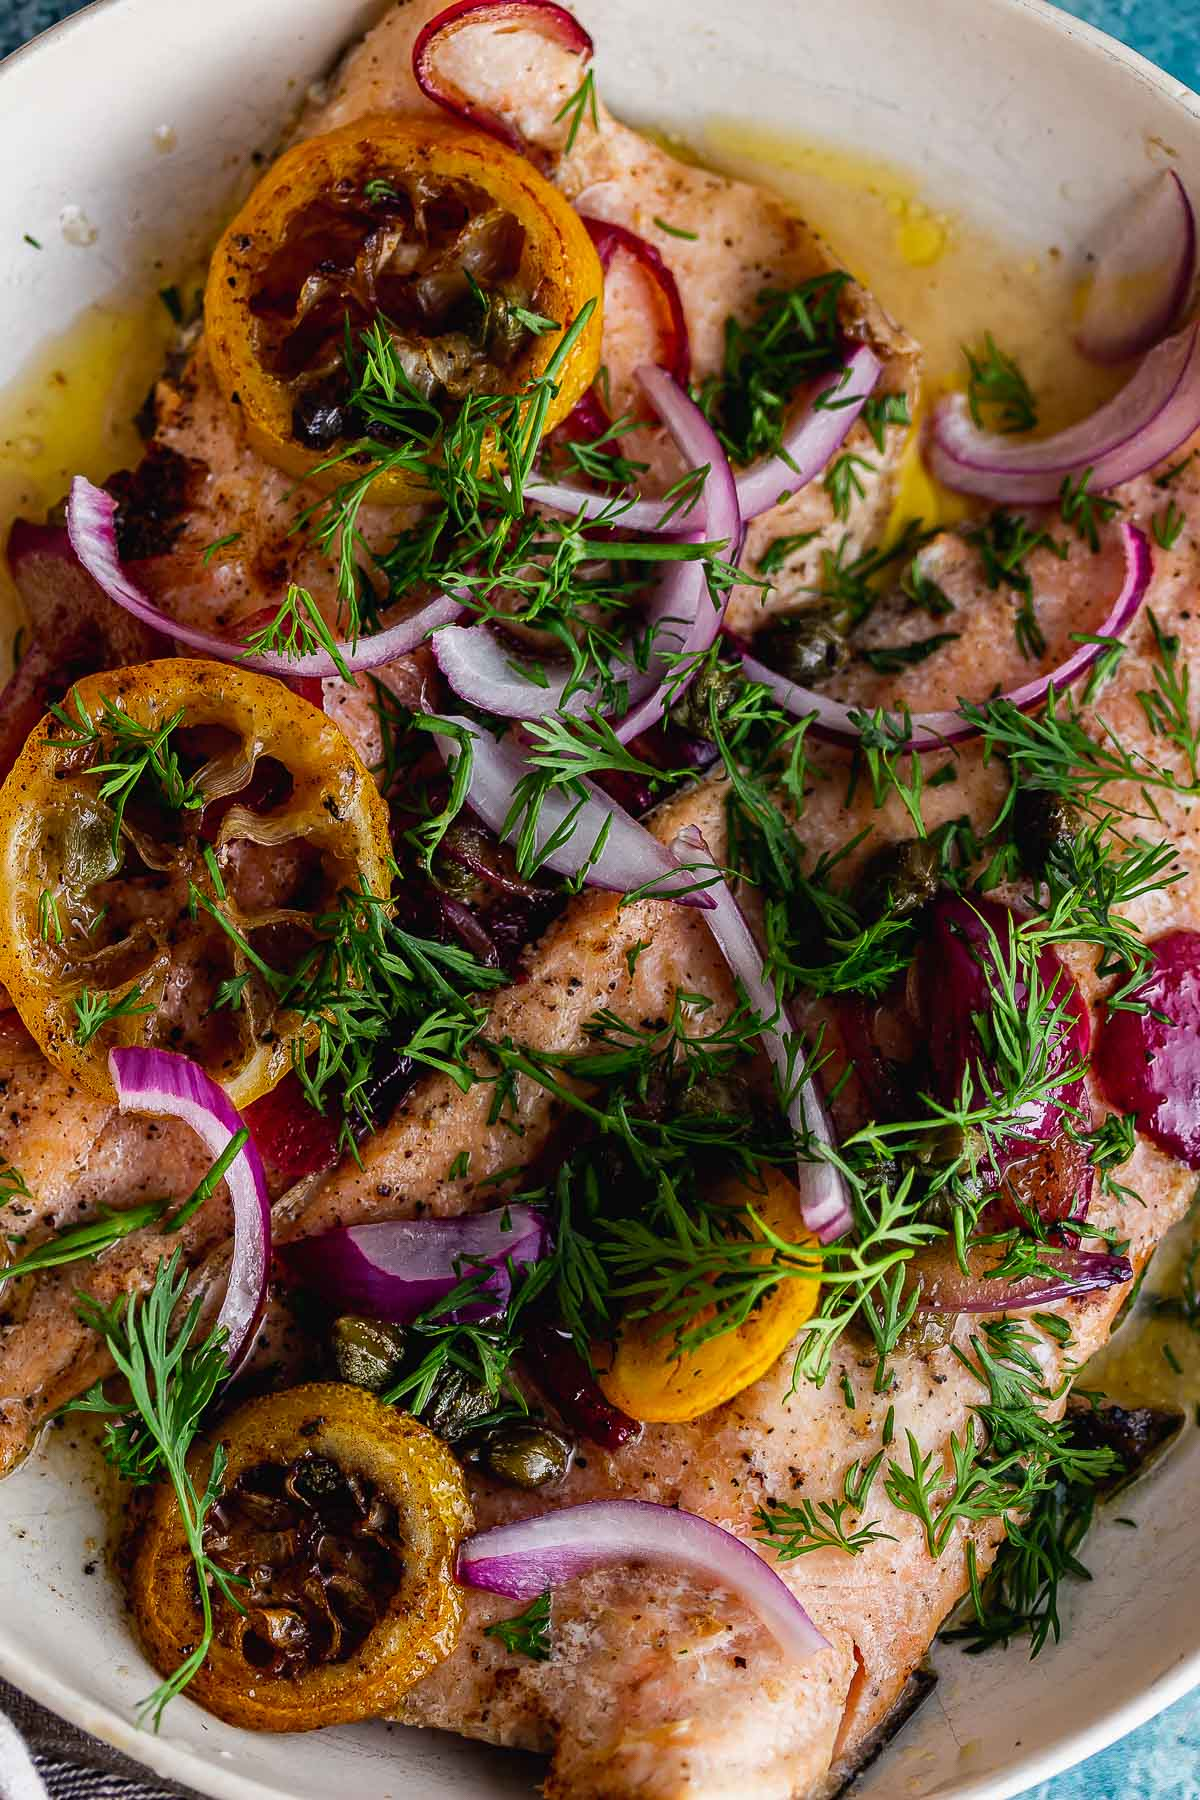 Overhead close up of lemon slices and red onion on top of cooked fish